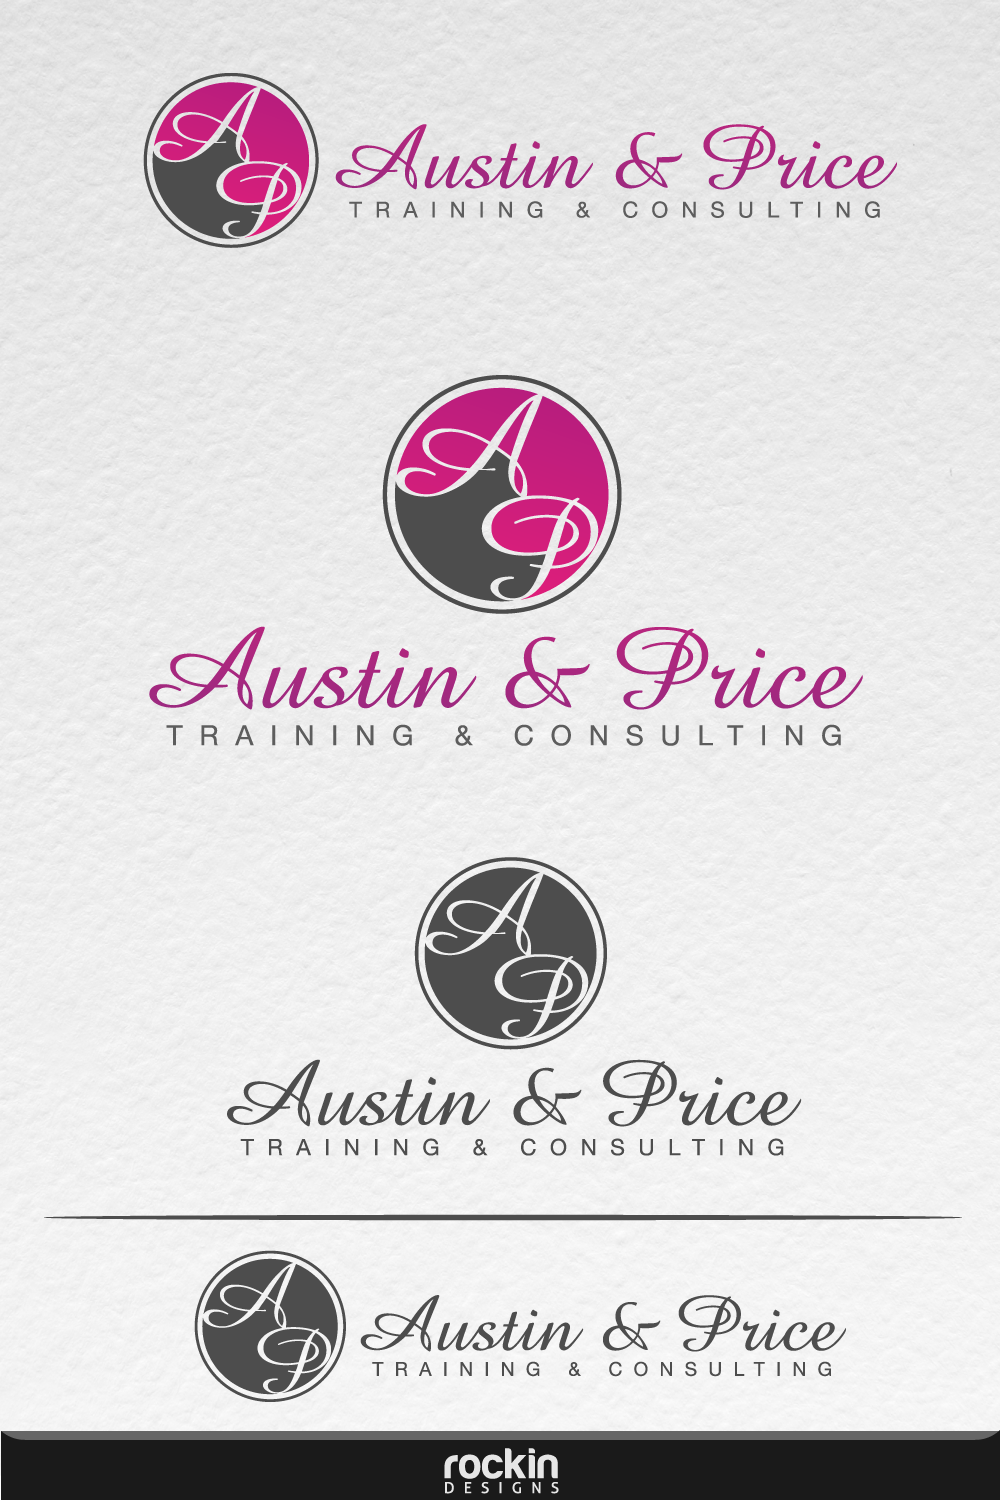 Logo Design by rockin - Entry No. 48 in the Logo Design Contest Artistic Logo Design for Austin Price Advisory.